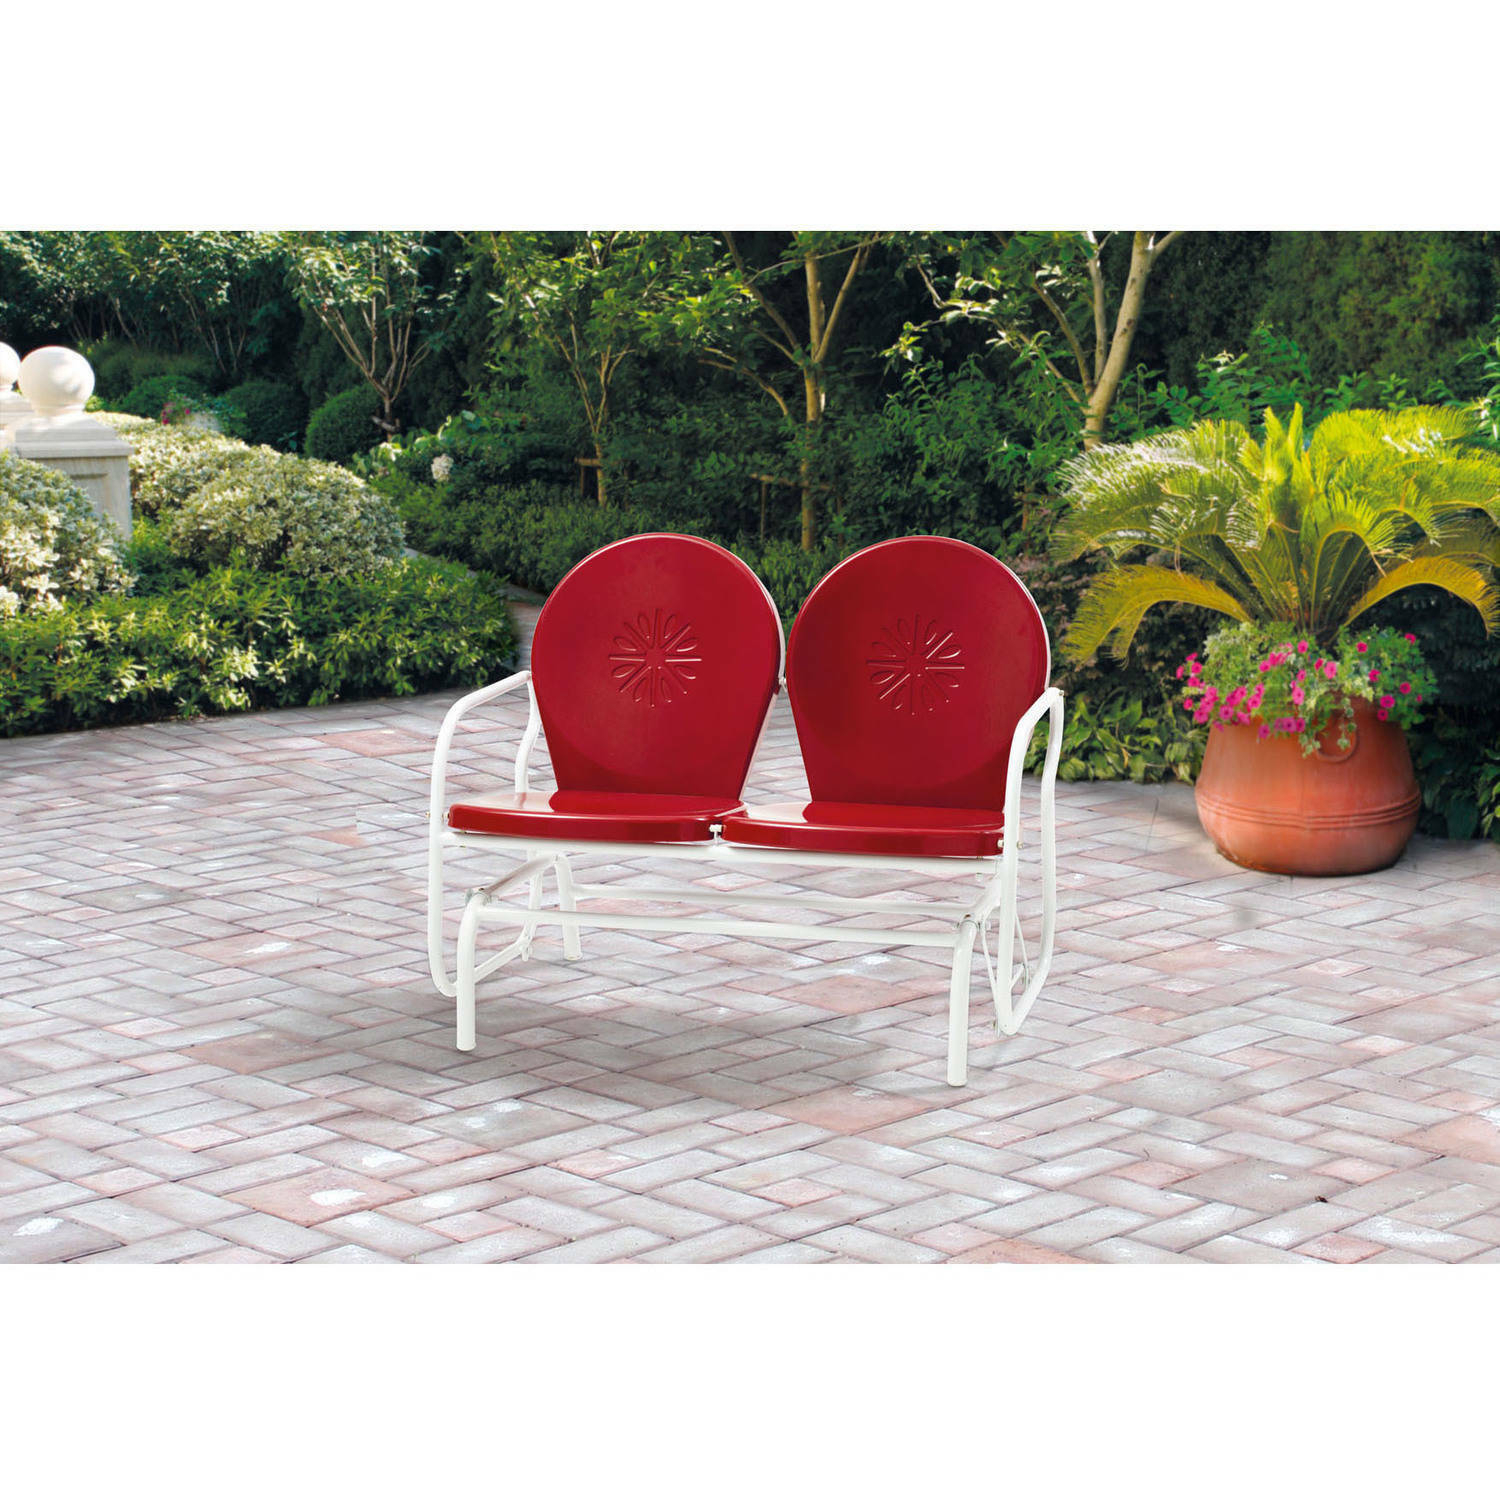 Retro Metal Glider Garden Seating Outdoor Furniture Yard Patio Red Chair Seats 2 Intended For Outdoor Retro Metal Double Glider Benches (View 4 of 25)